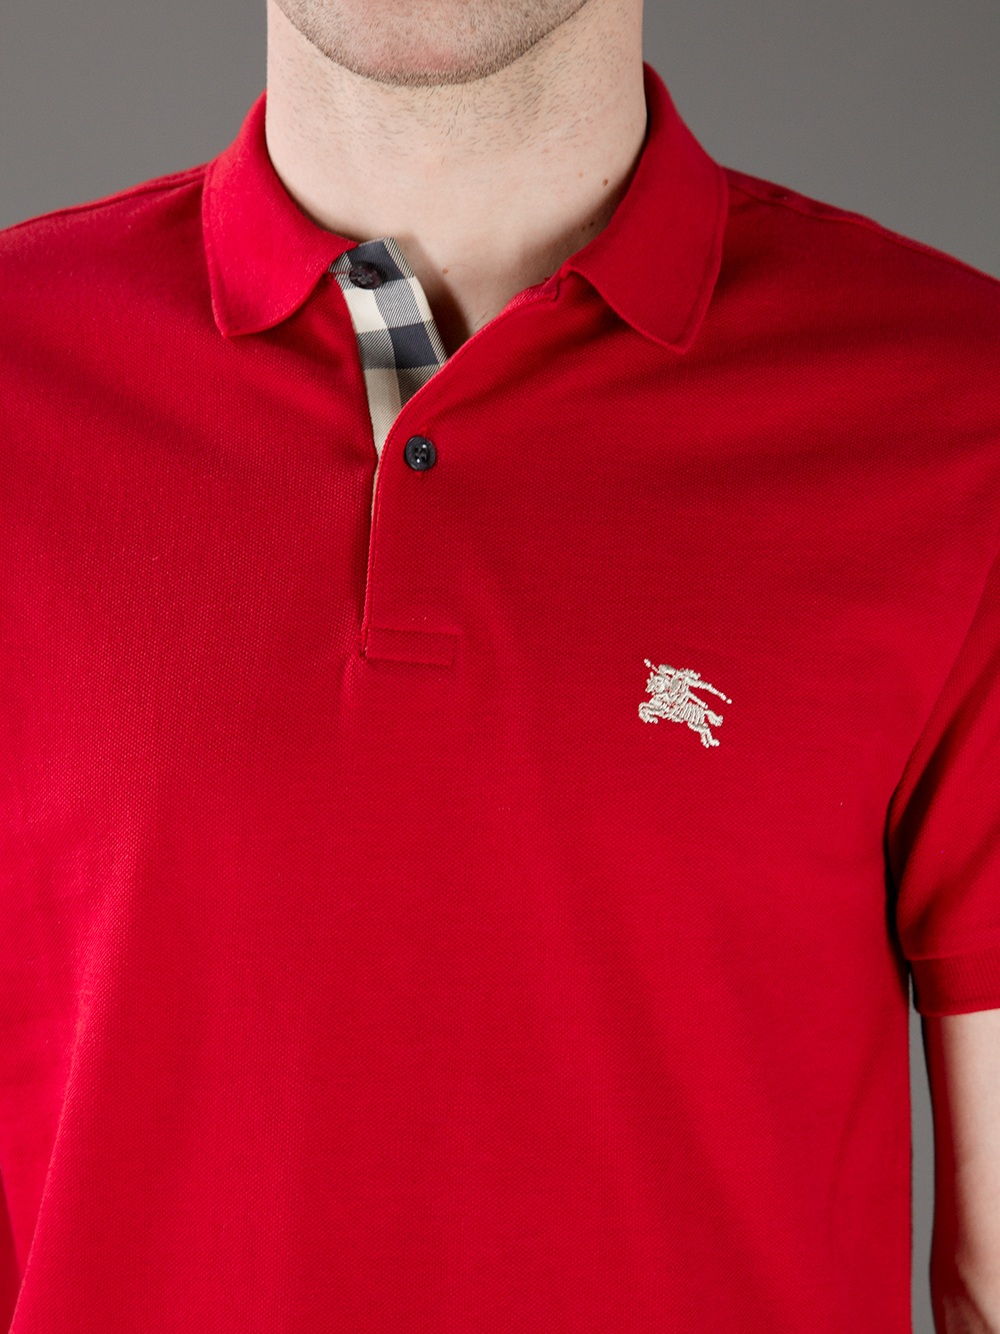 19b694983 Burberry Brit Classic Polo Shirt in Red for Men - Lyst